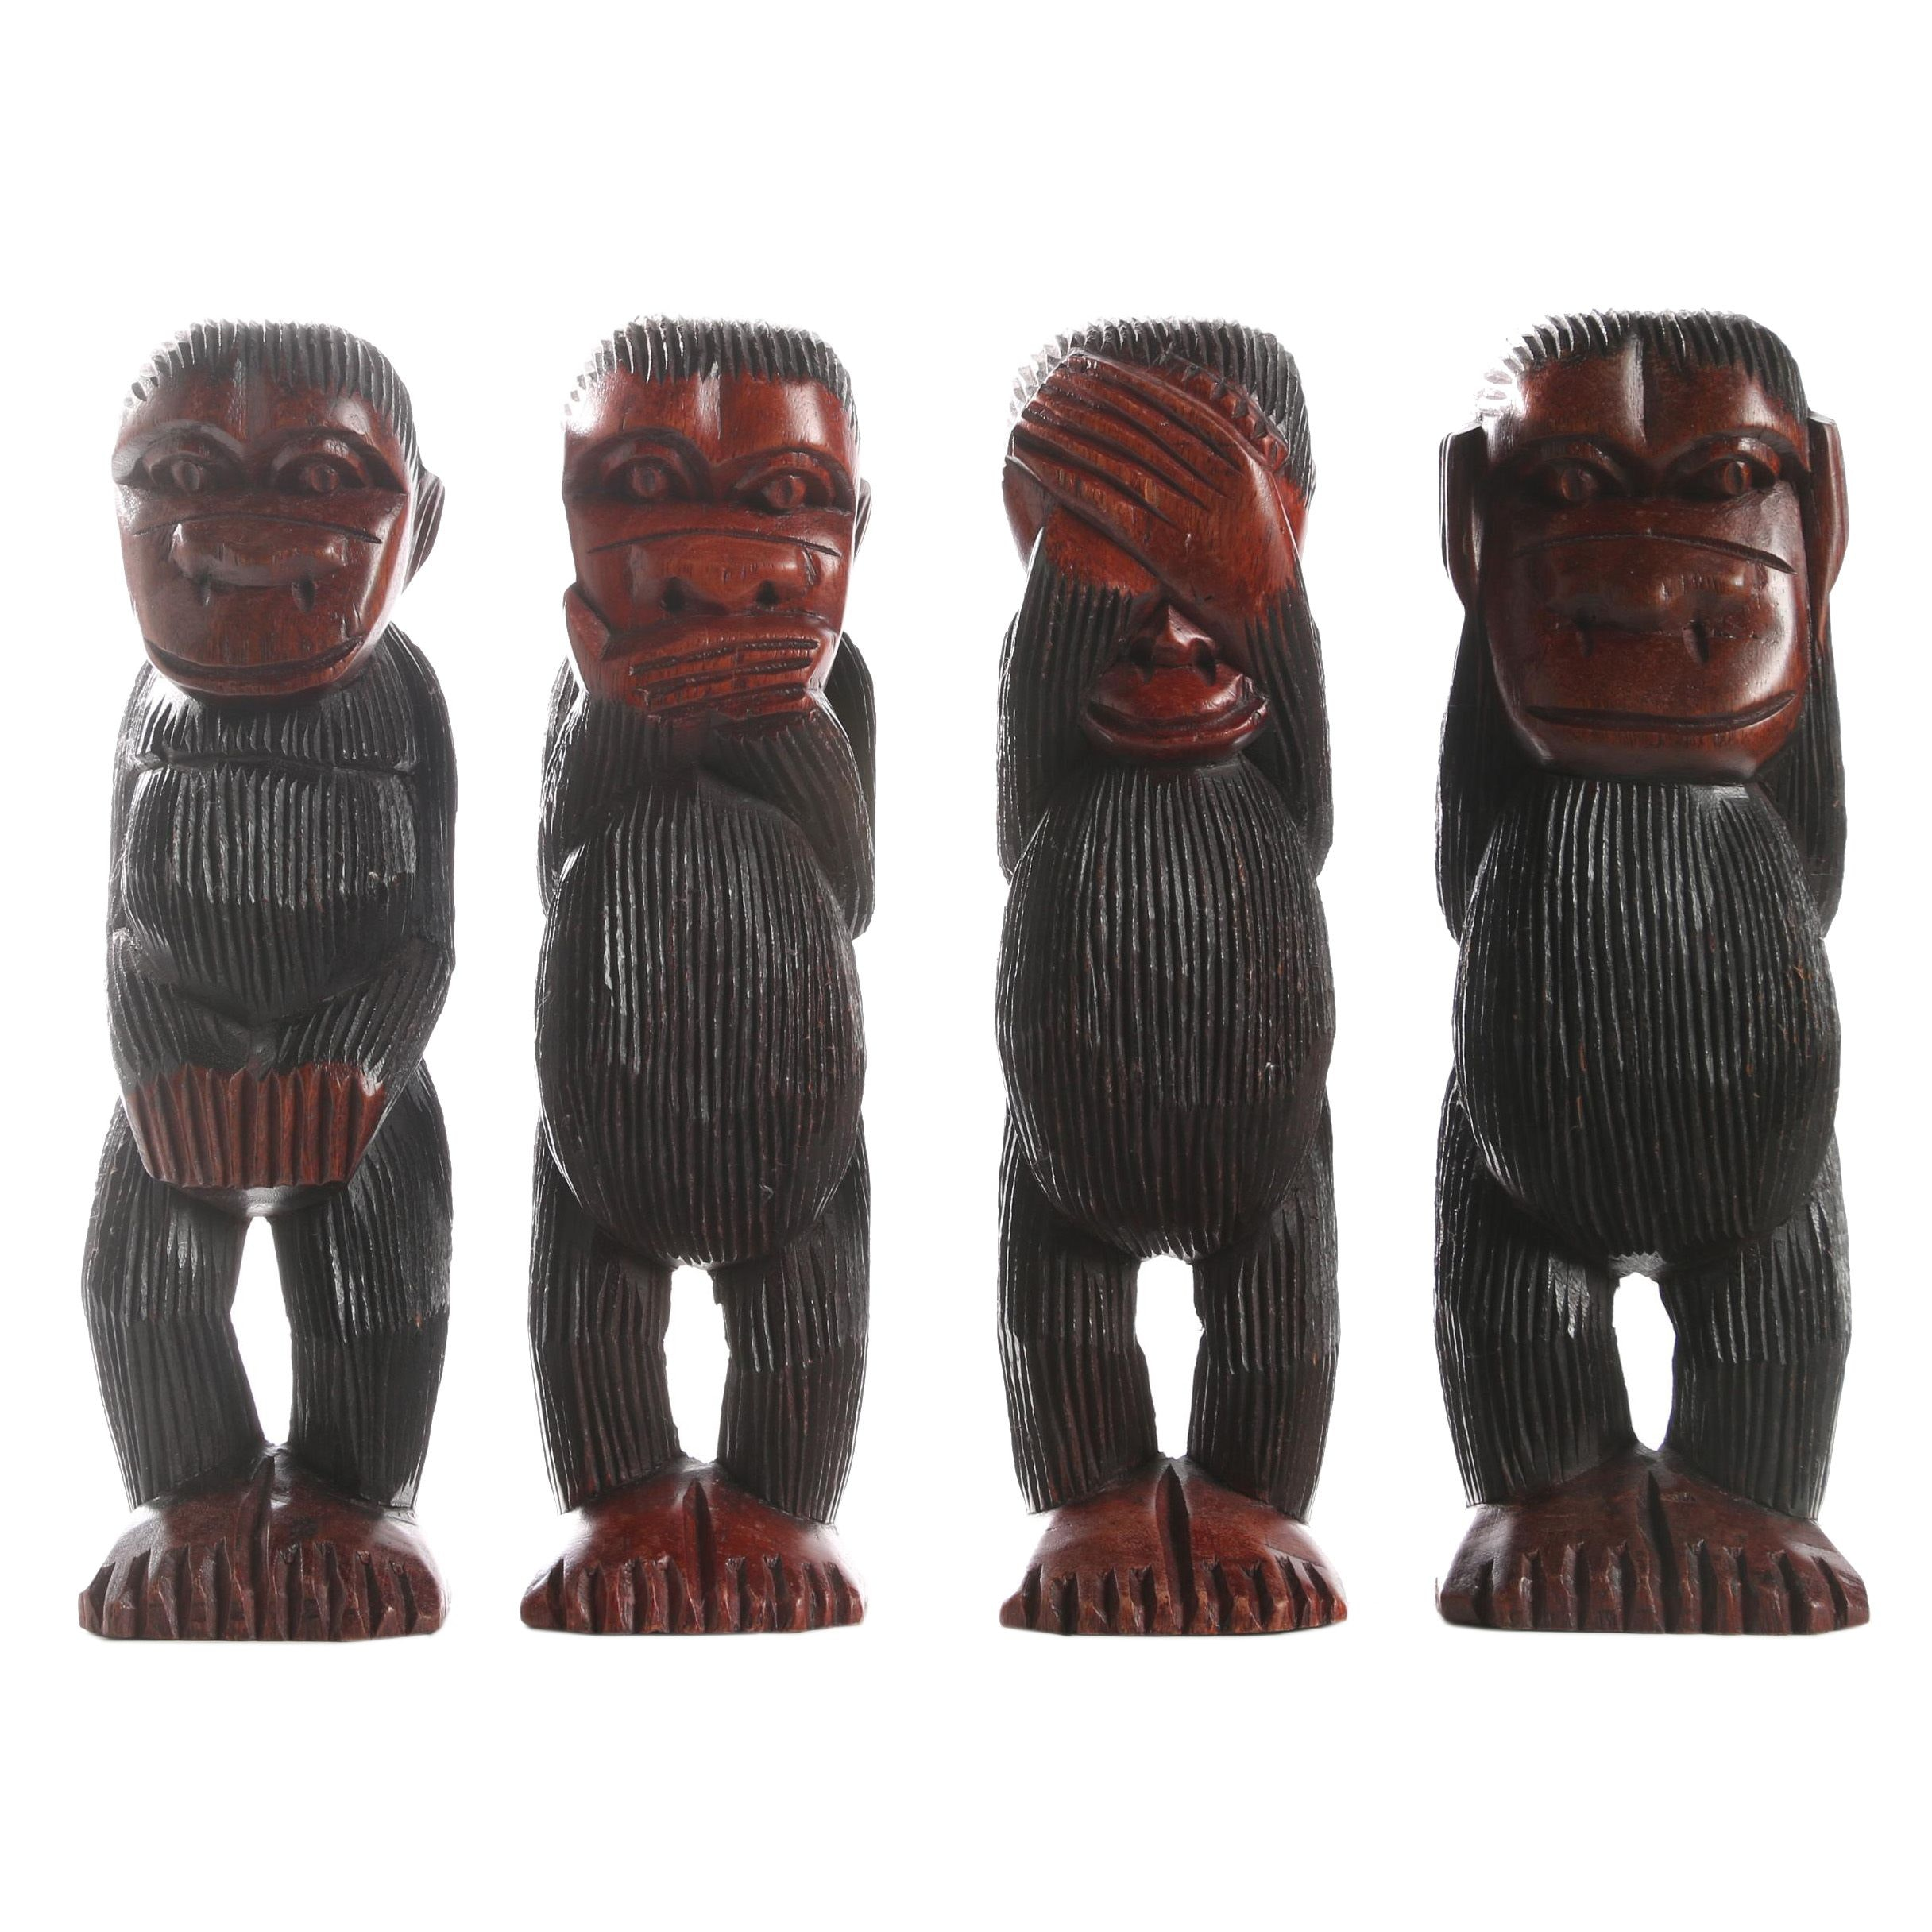 Four Carved Wooden Monkey Sculptures